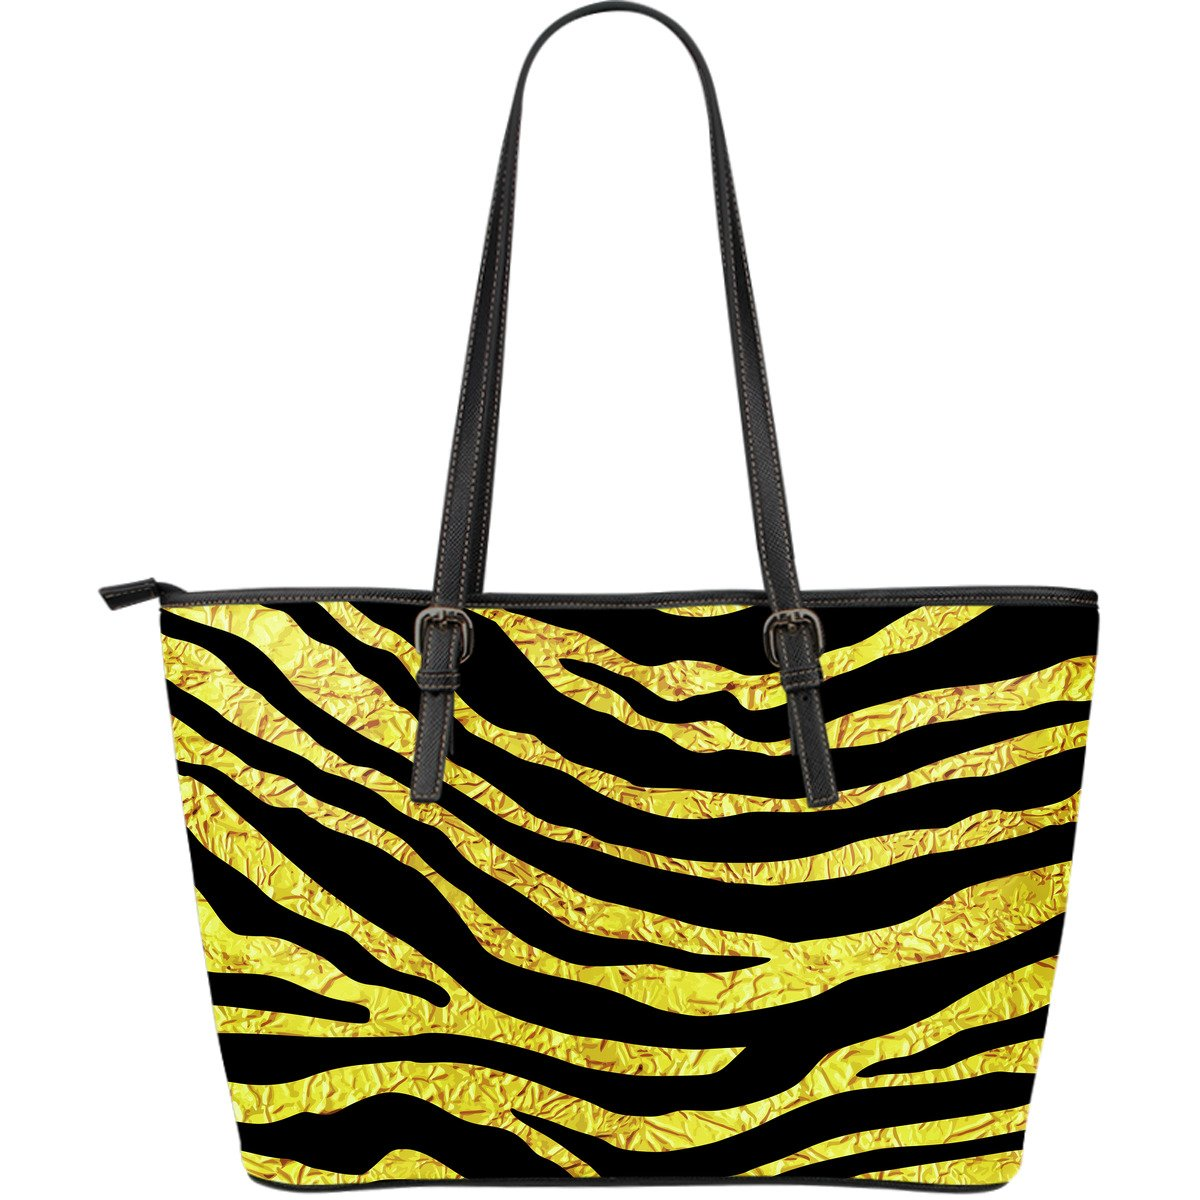 zebra Gold Large Leather Tote Bag